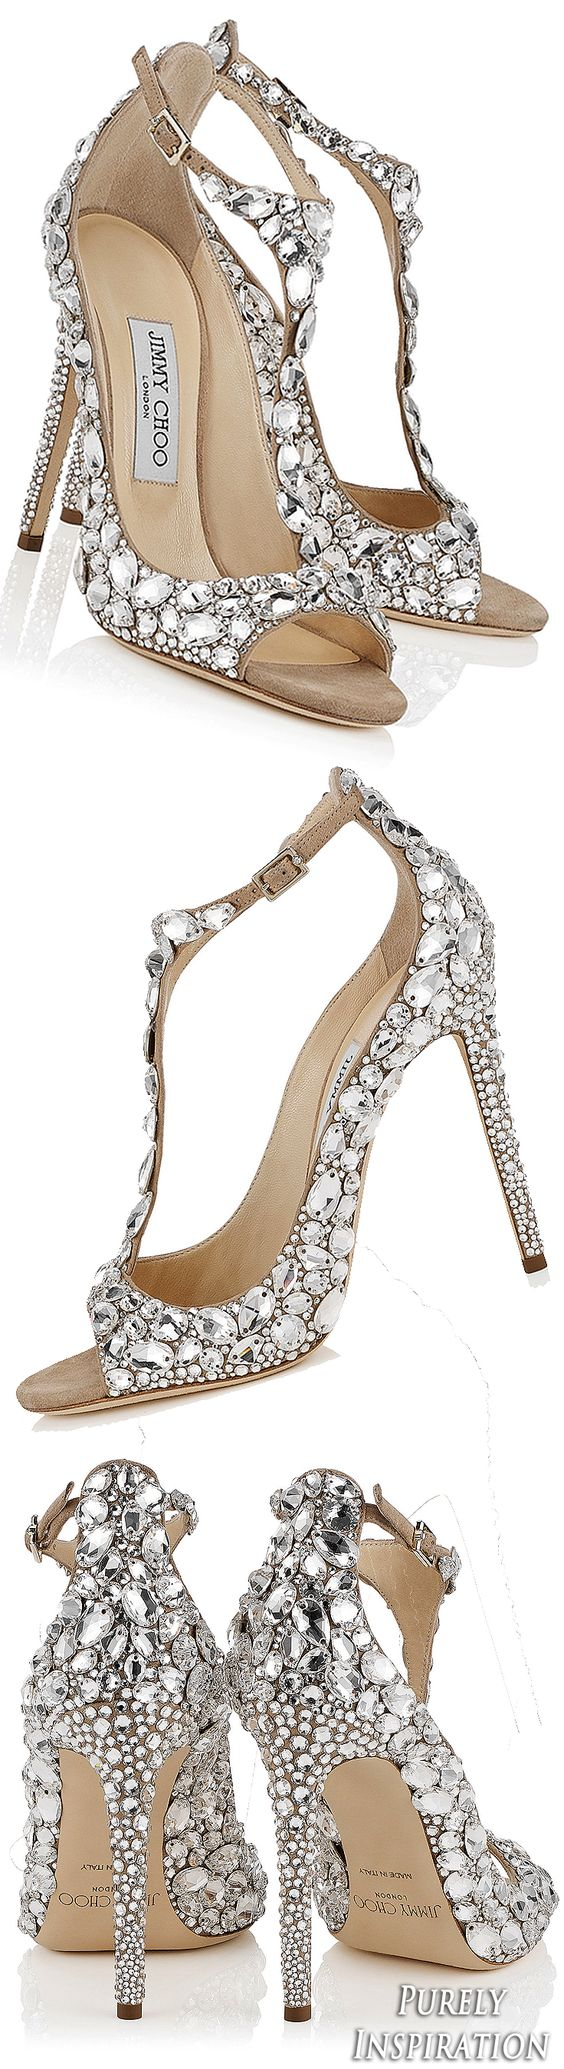 Jimmy Choo Rox 110 Bridal Collection | Purely Inspiration